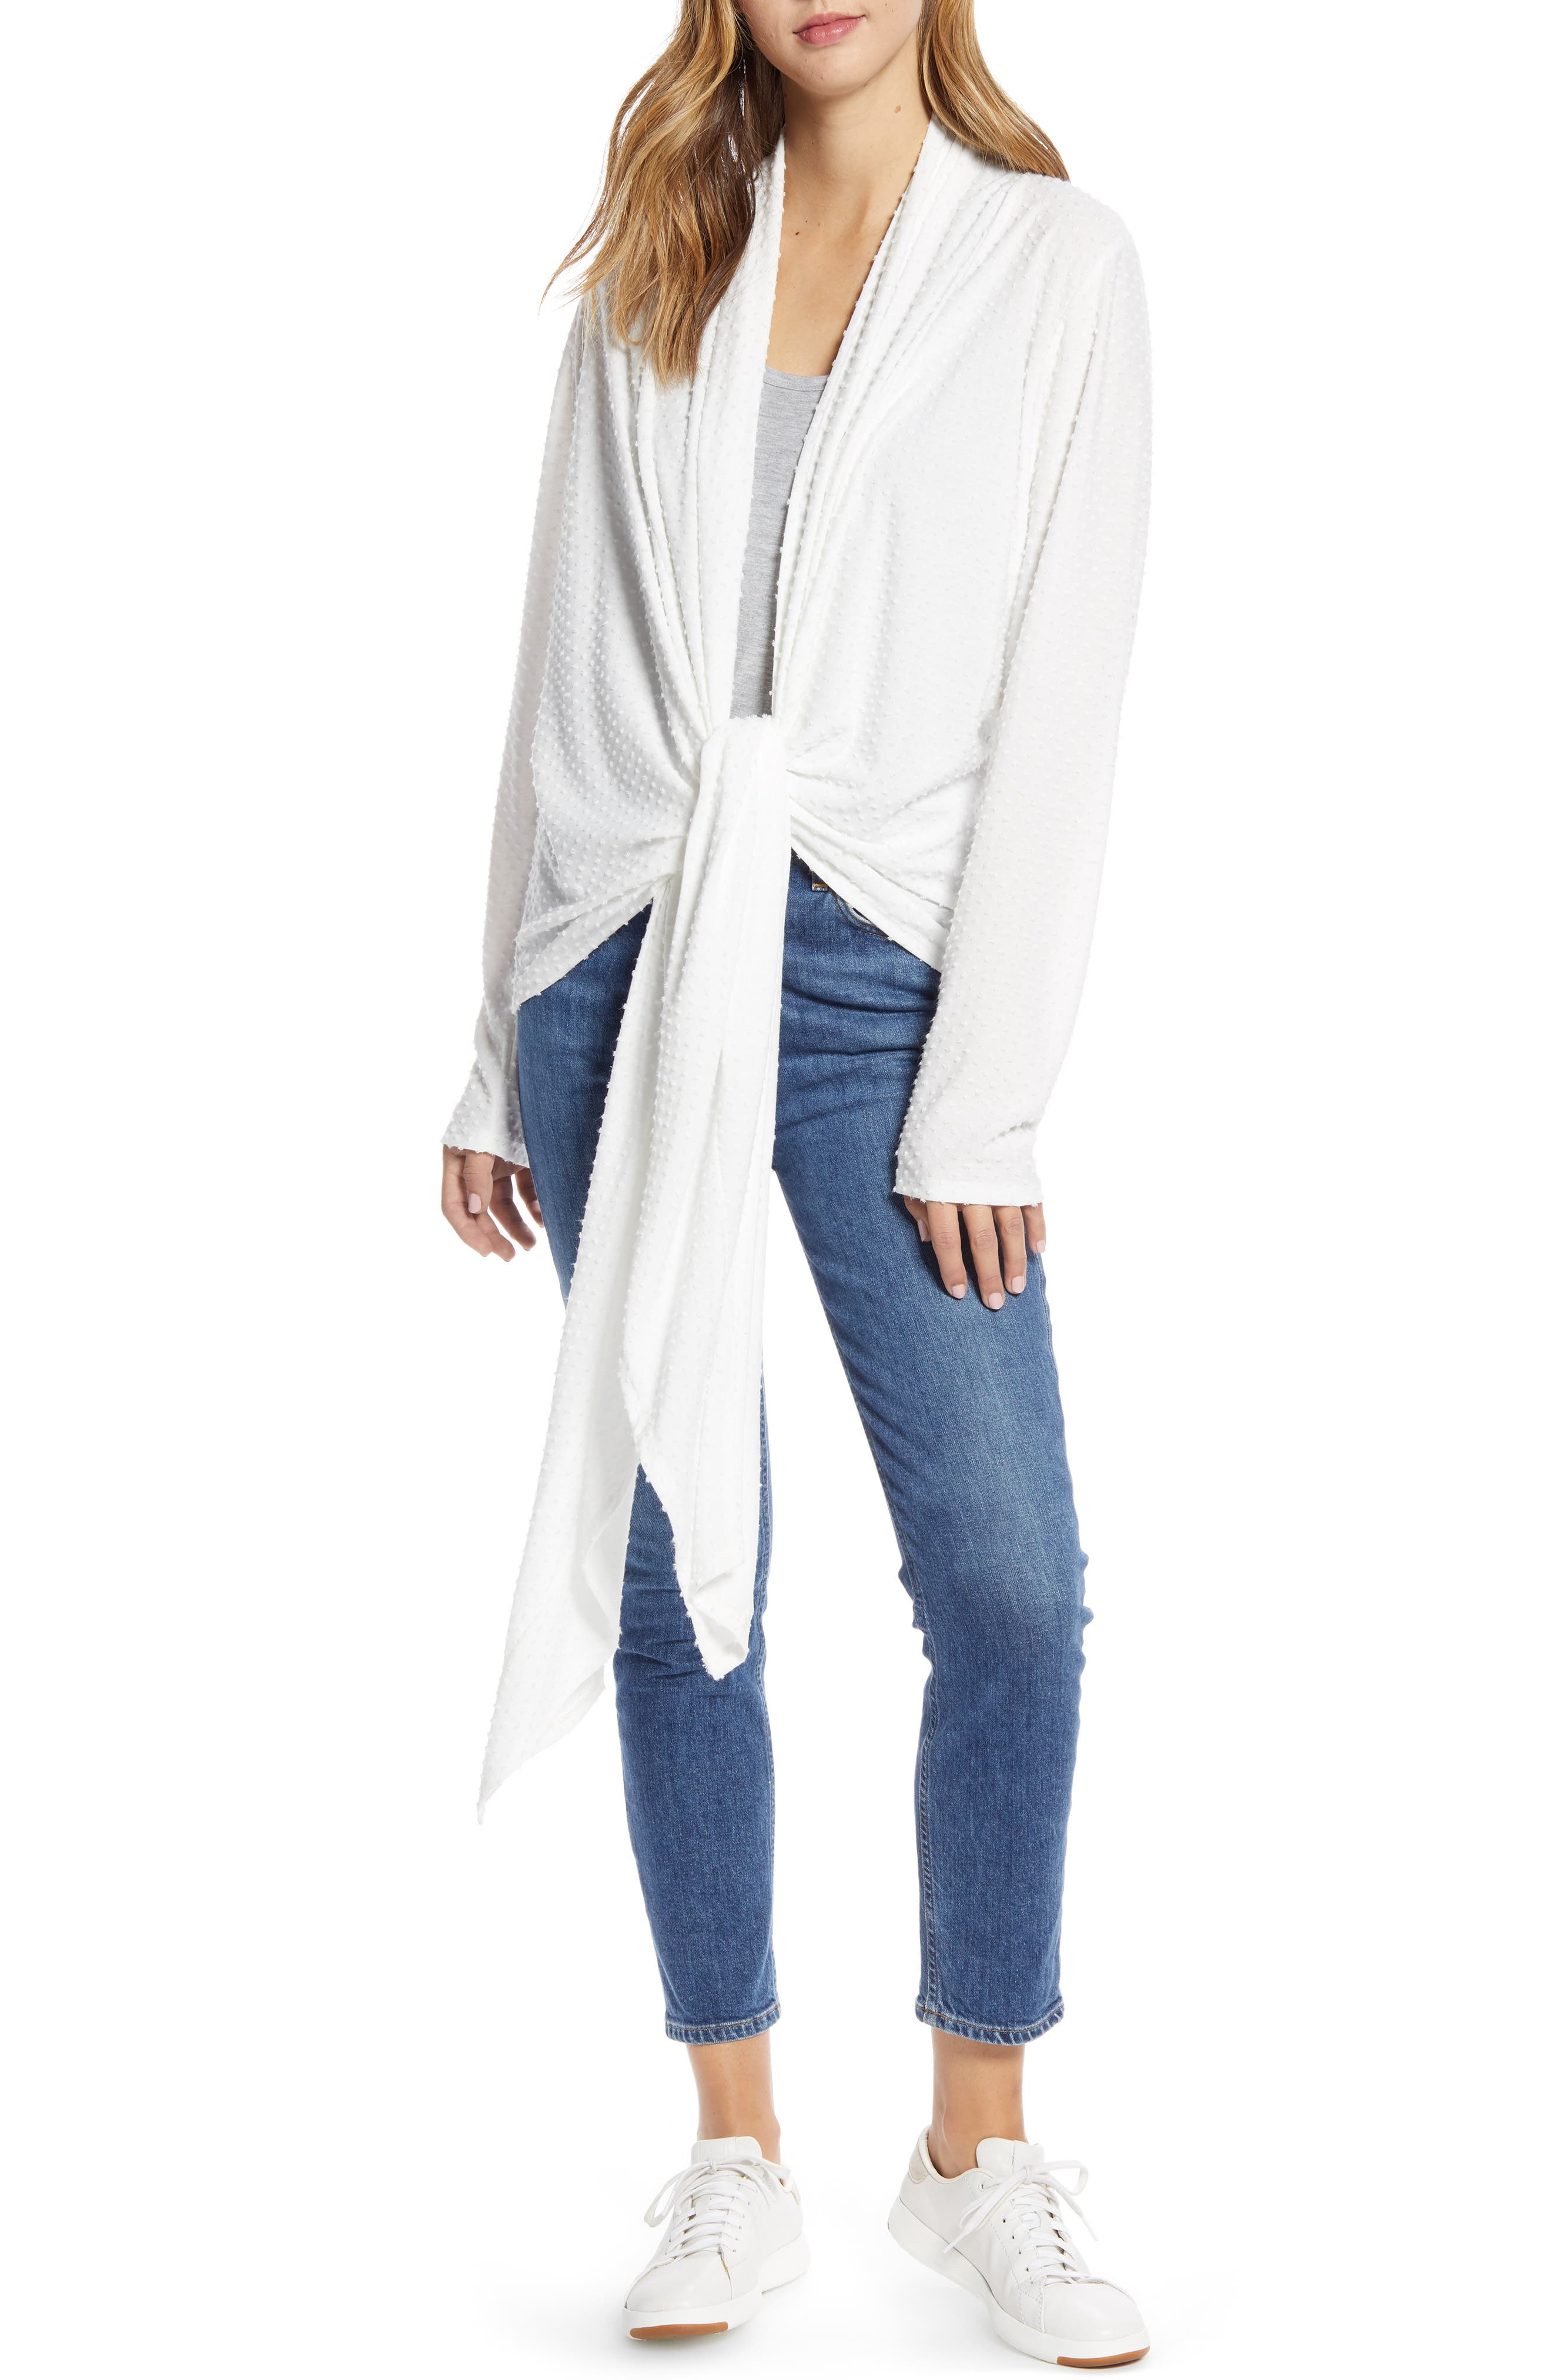 Elevate your cozy look in this stretch-knit cardi, designed with a comfy shawl collar and drapey front tie. Style Name: Loveappella Drape Tie Front Cardigan. Style Number: 5942357. Available in stores.